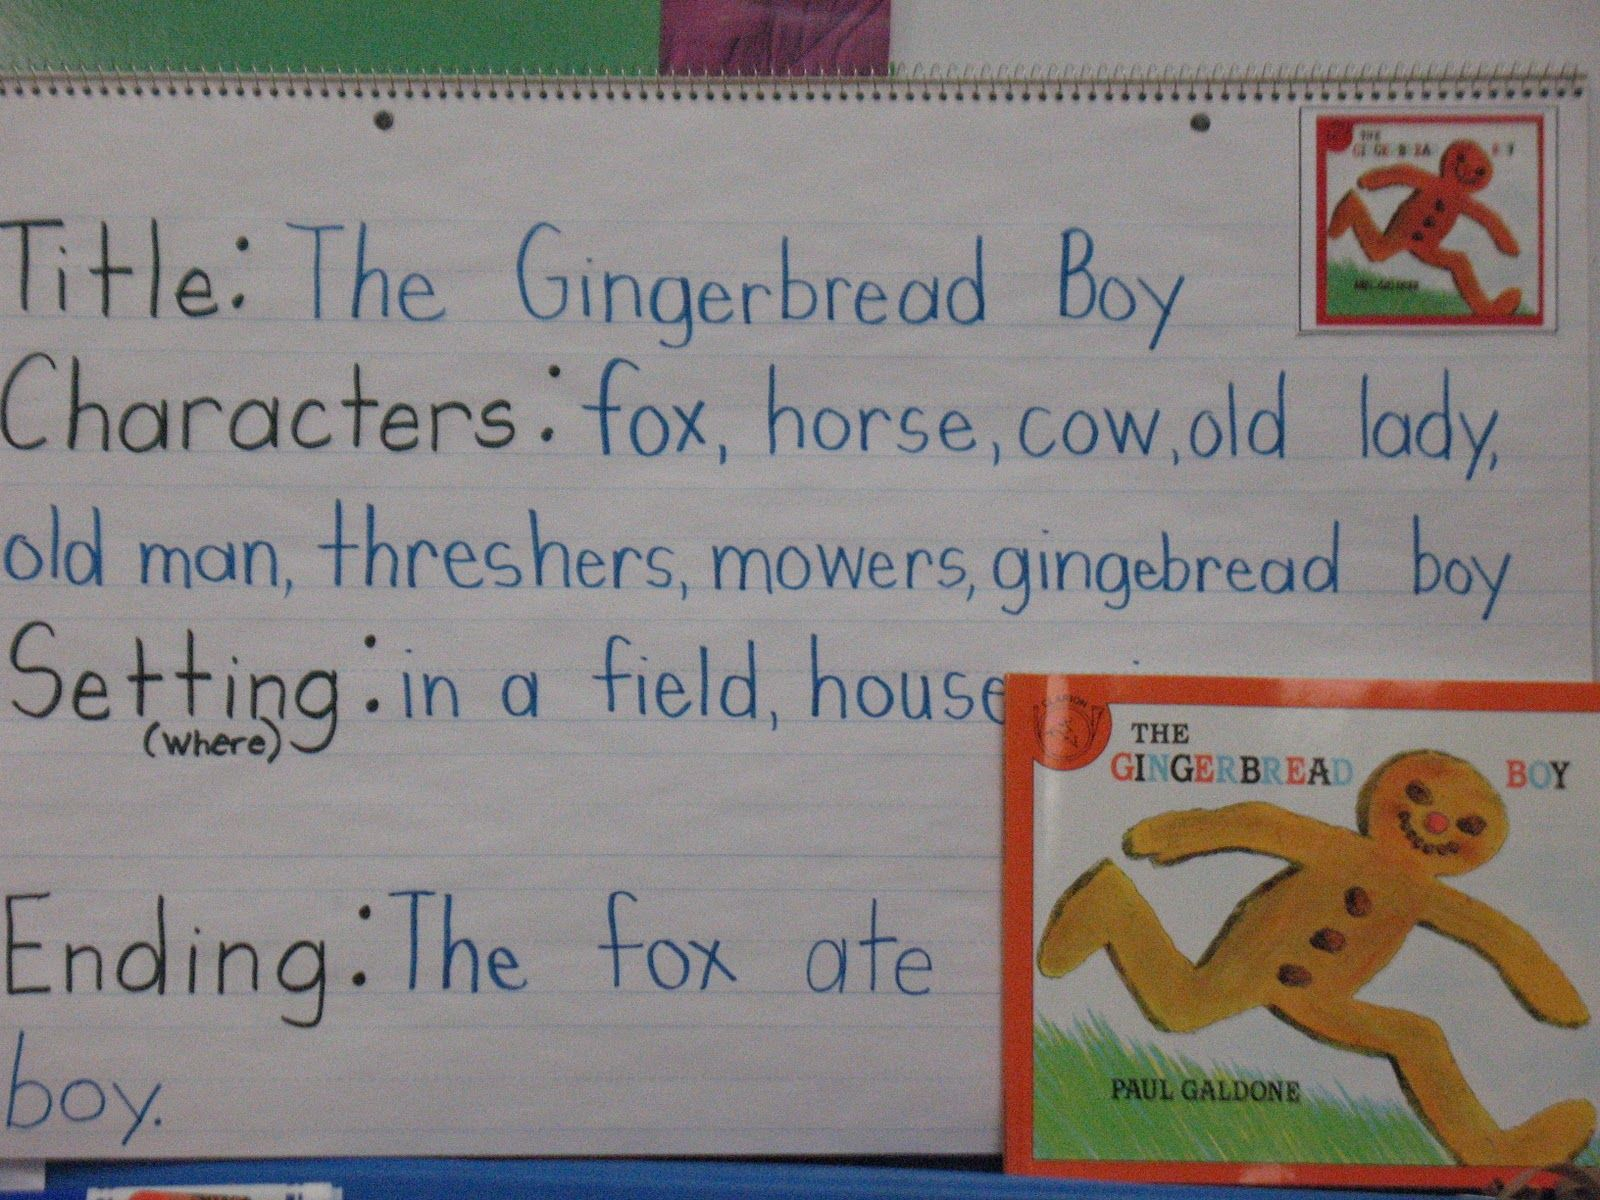 I Like Just Using Title Characters Setting And Ending For Comparing Gingerbread Stories